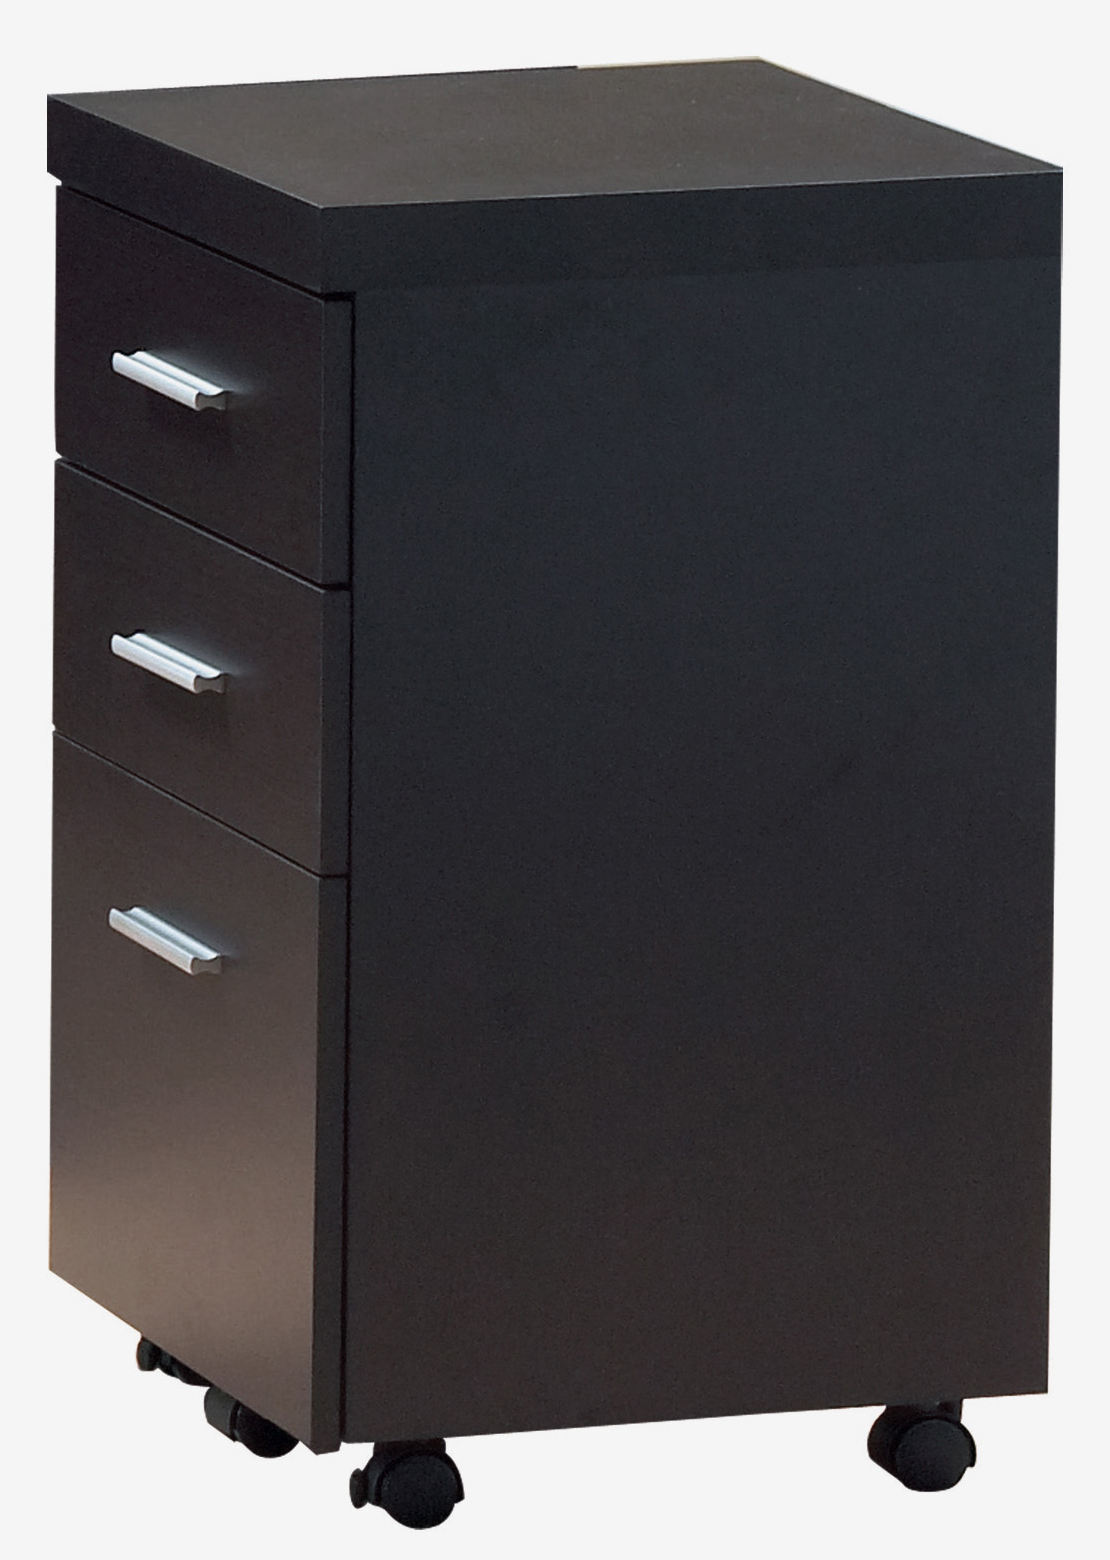 Hollow-Core Three Drawer File Cabinet with Castors, Cappuccino